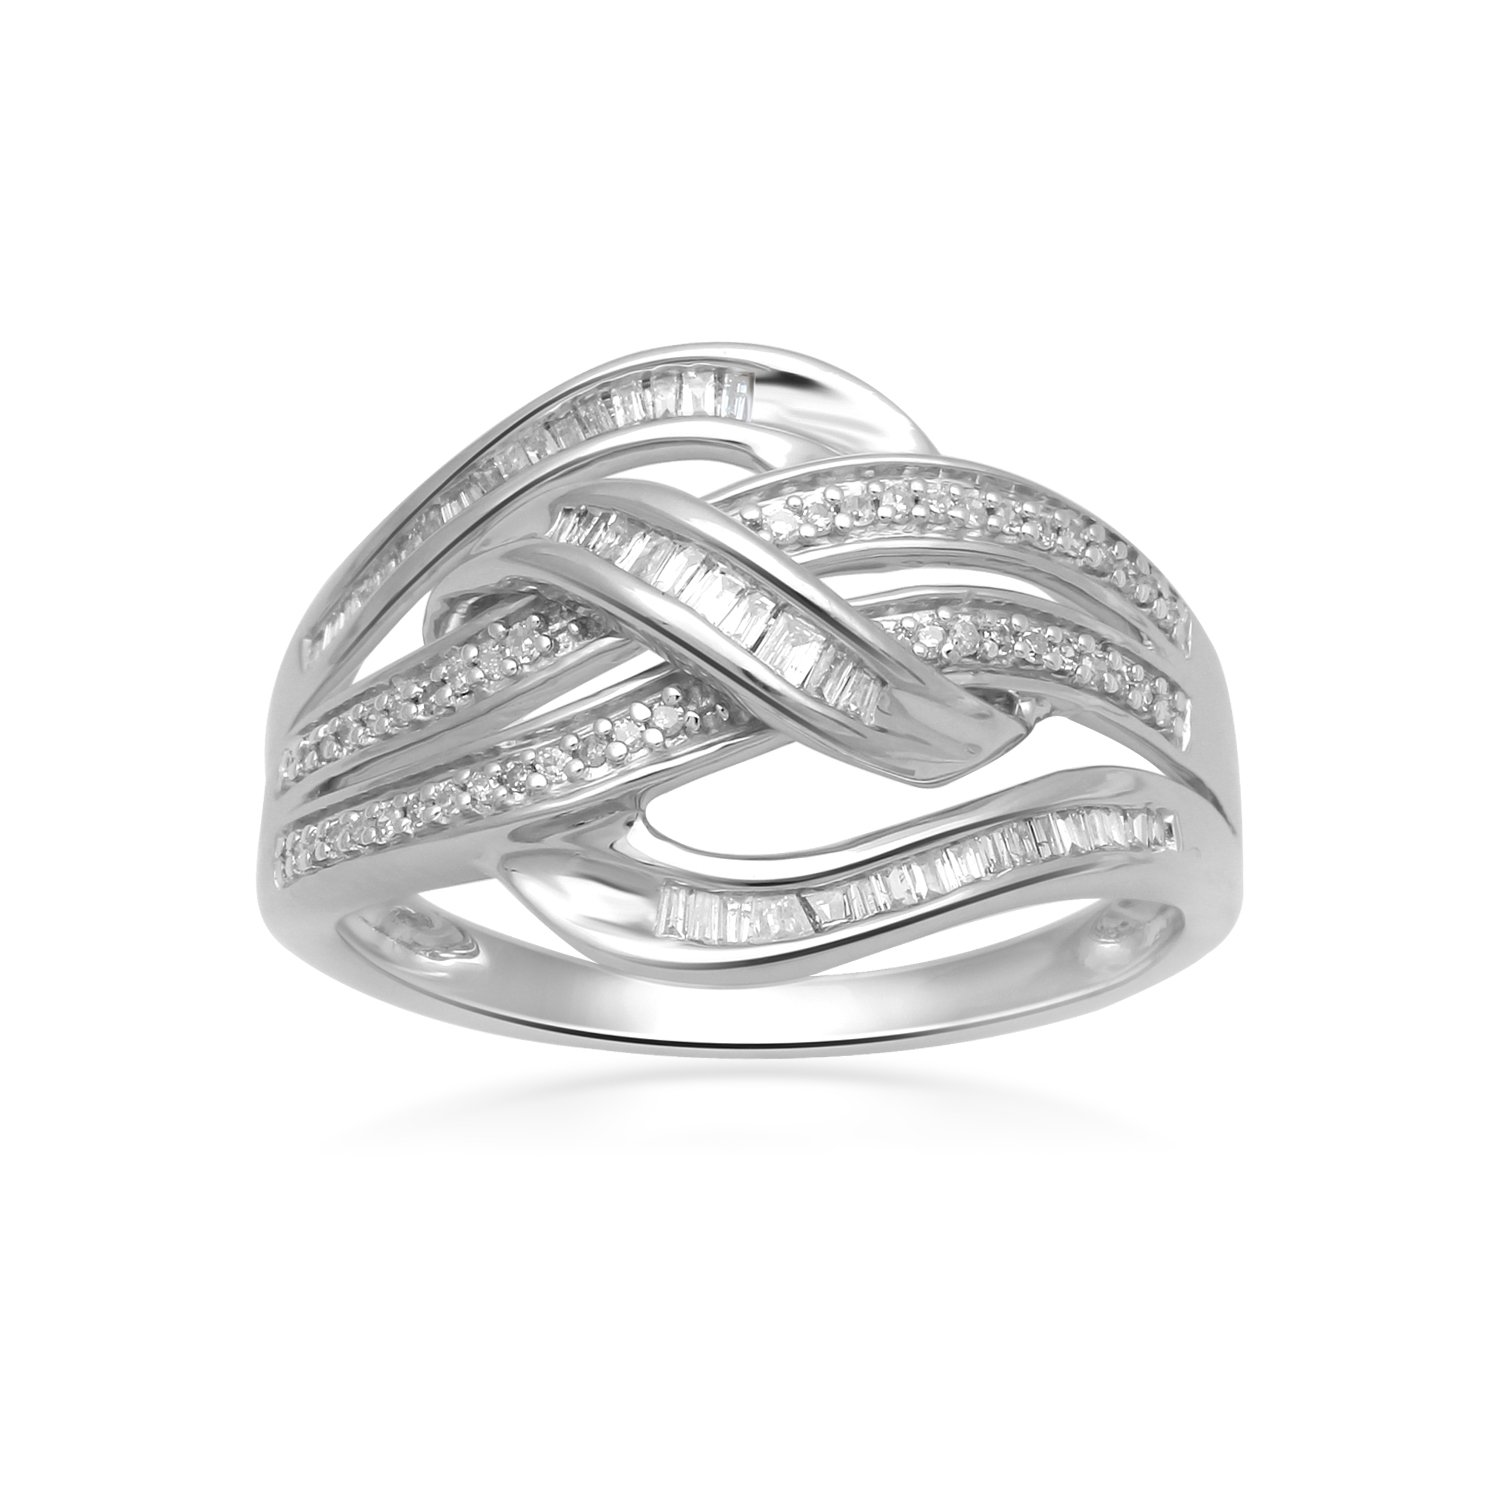 Jewelili Sterling Silver Baguette and Round Diamond Crossover Ring, 1/3cttw. Size 7